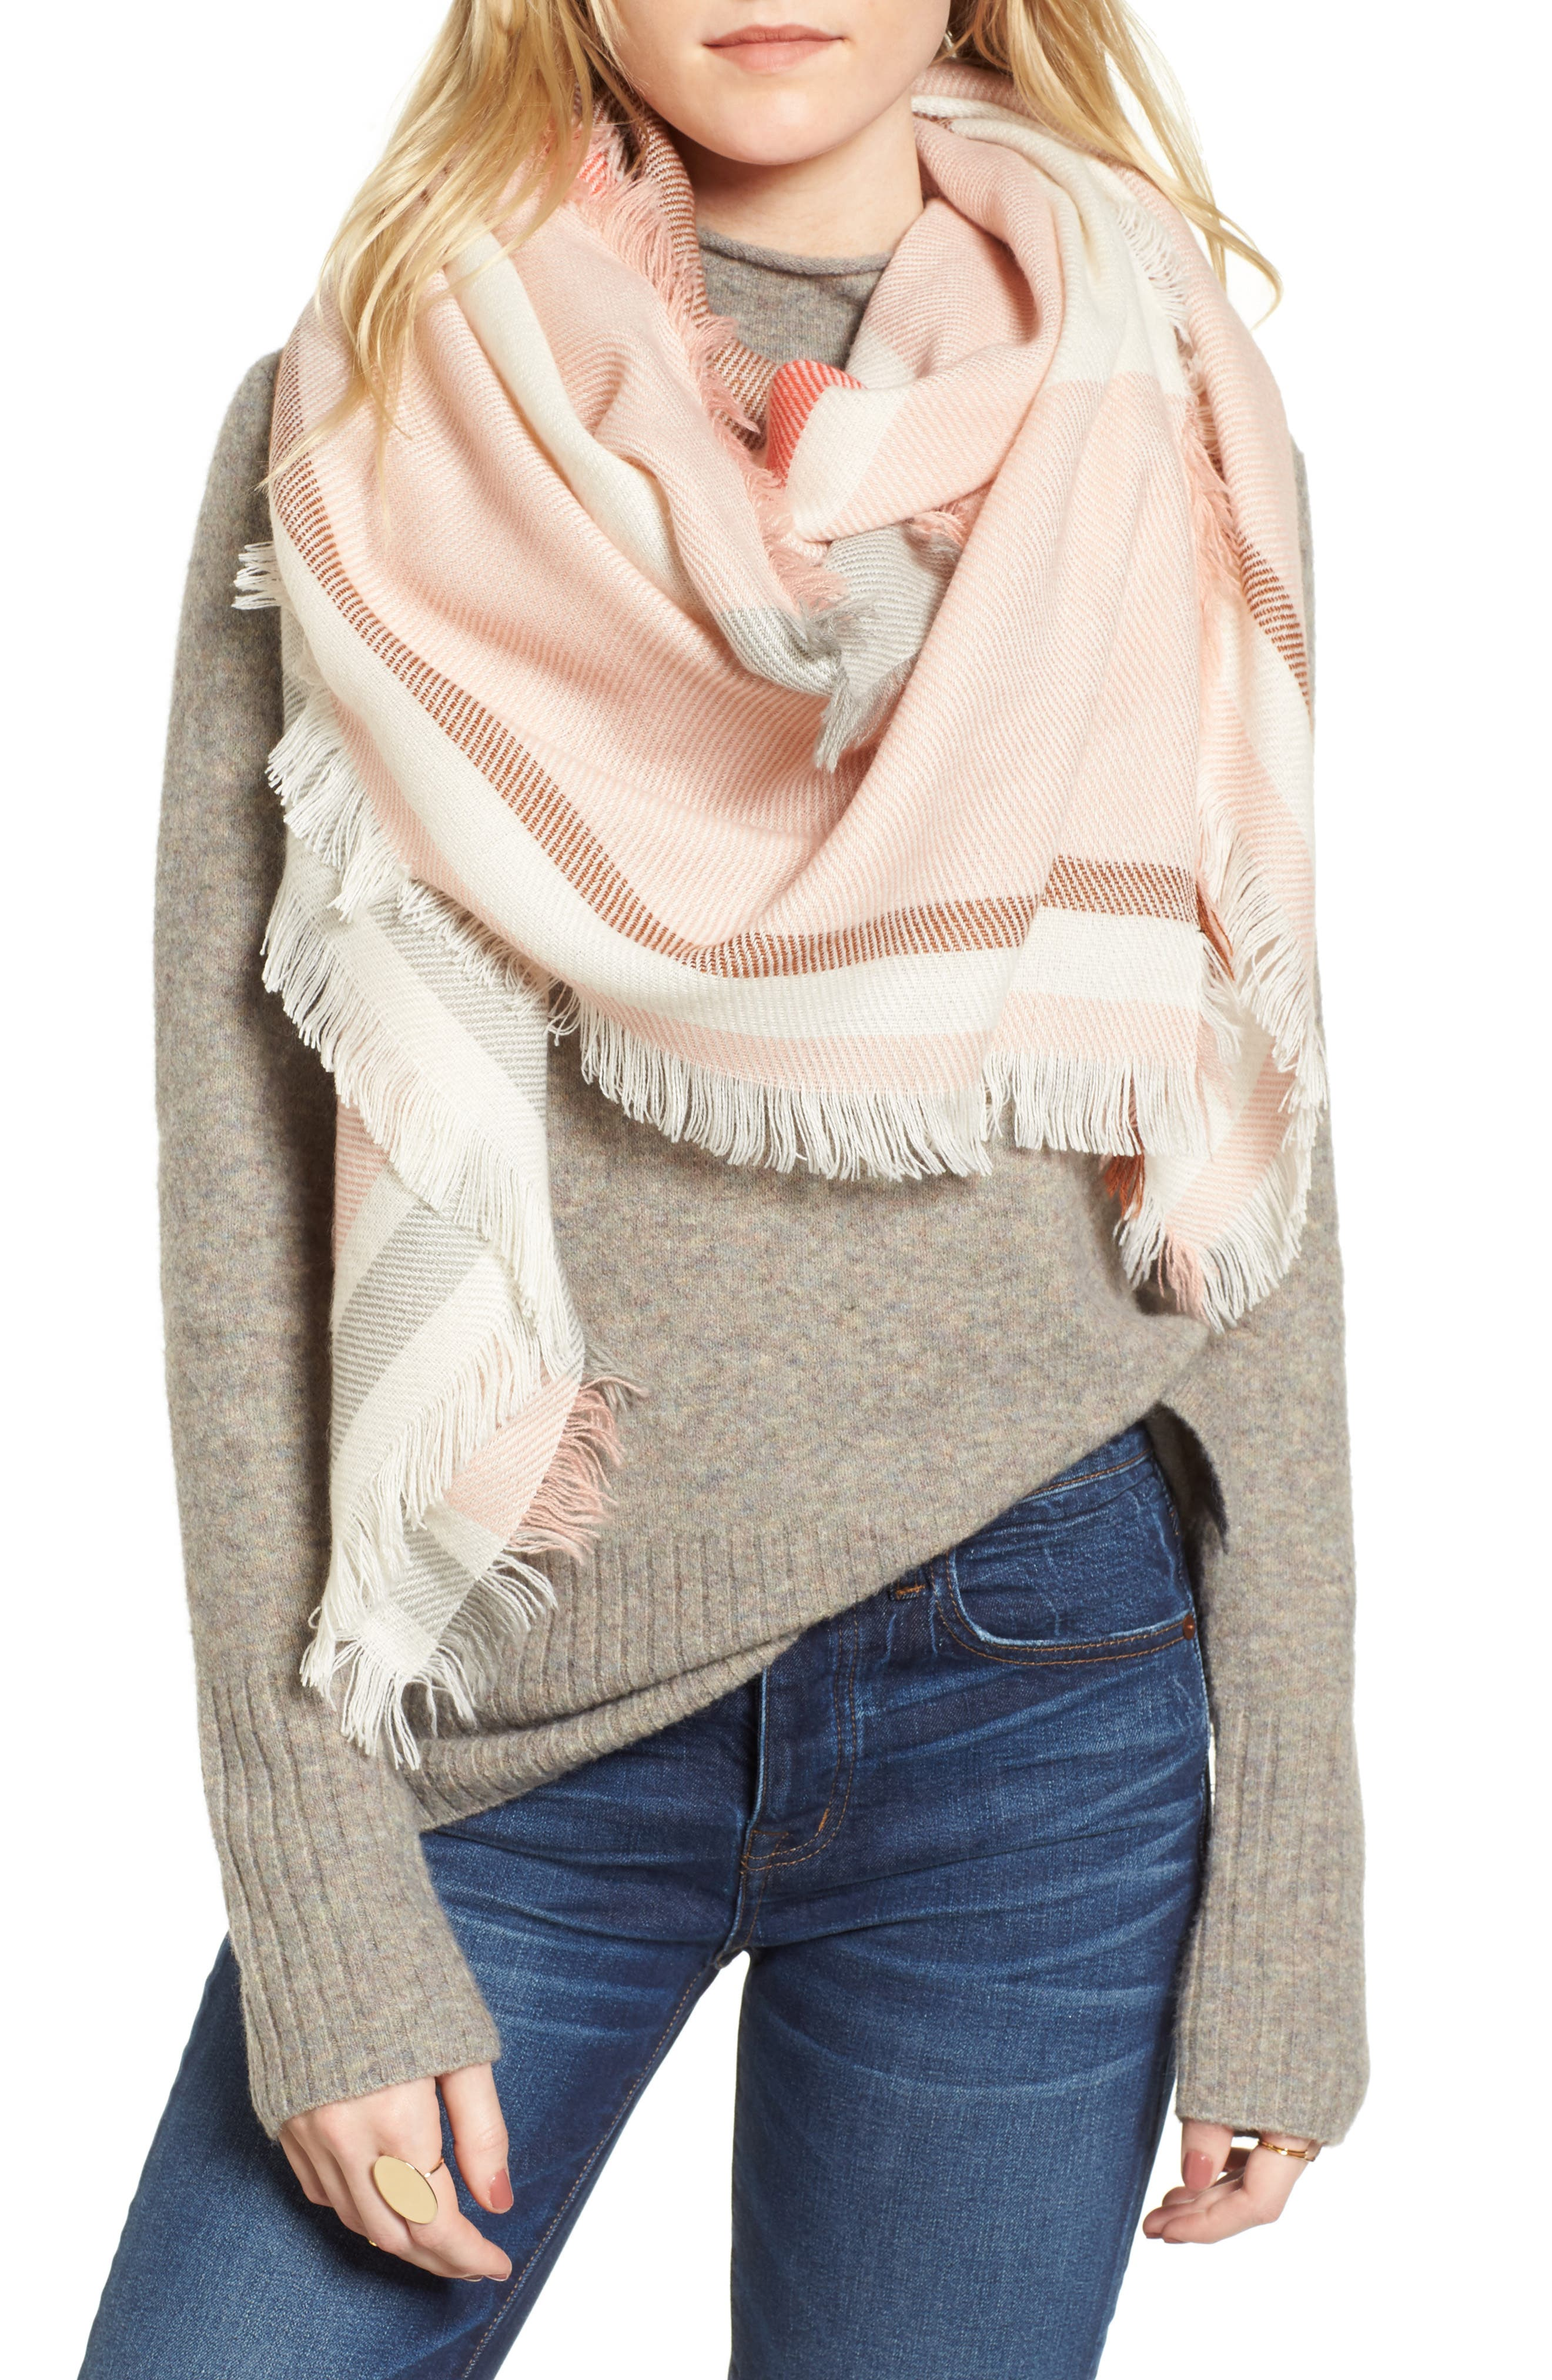 Main Image - Madewell Colorblock Blanket Scarf